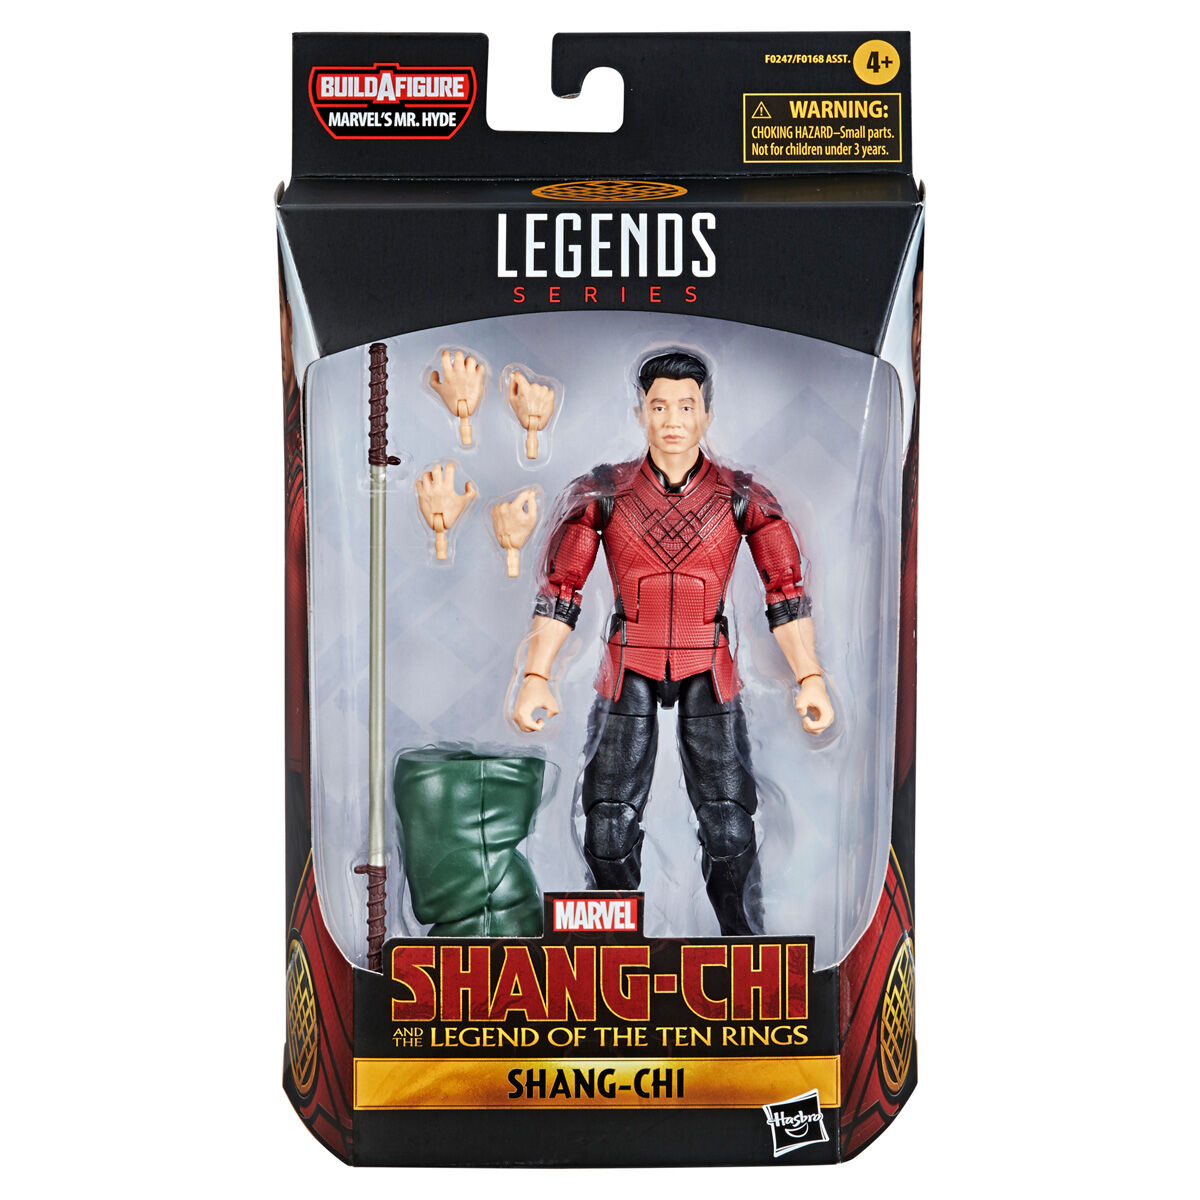 Figura Shang-Chi - Shang-Chi and the Legend of the Ten Rings Marvel 15cm 5010993786510